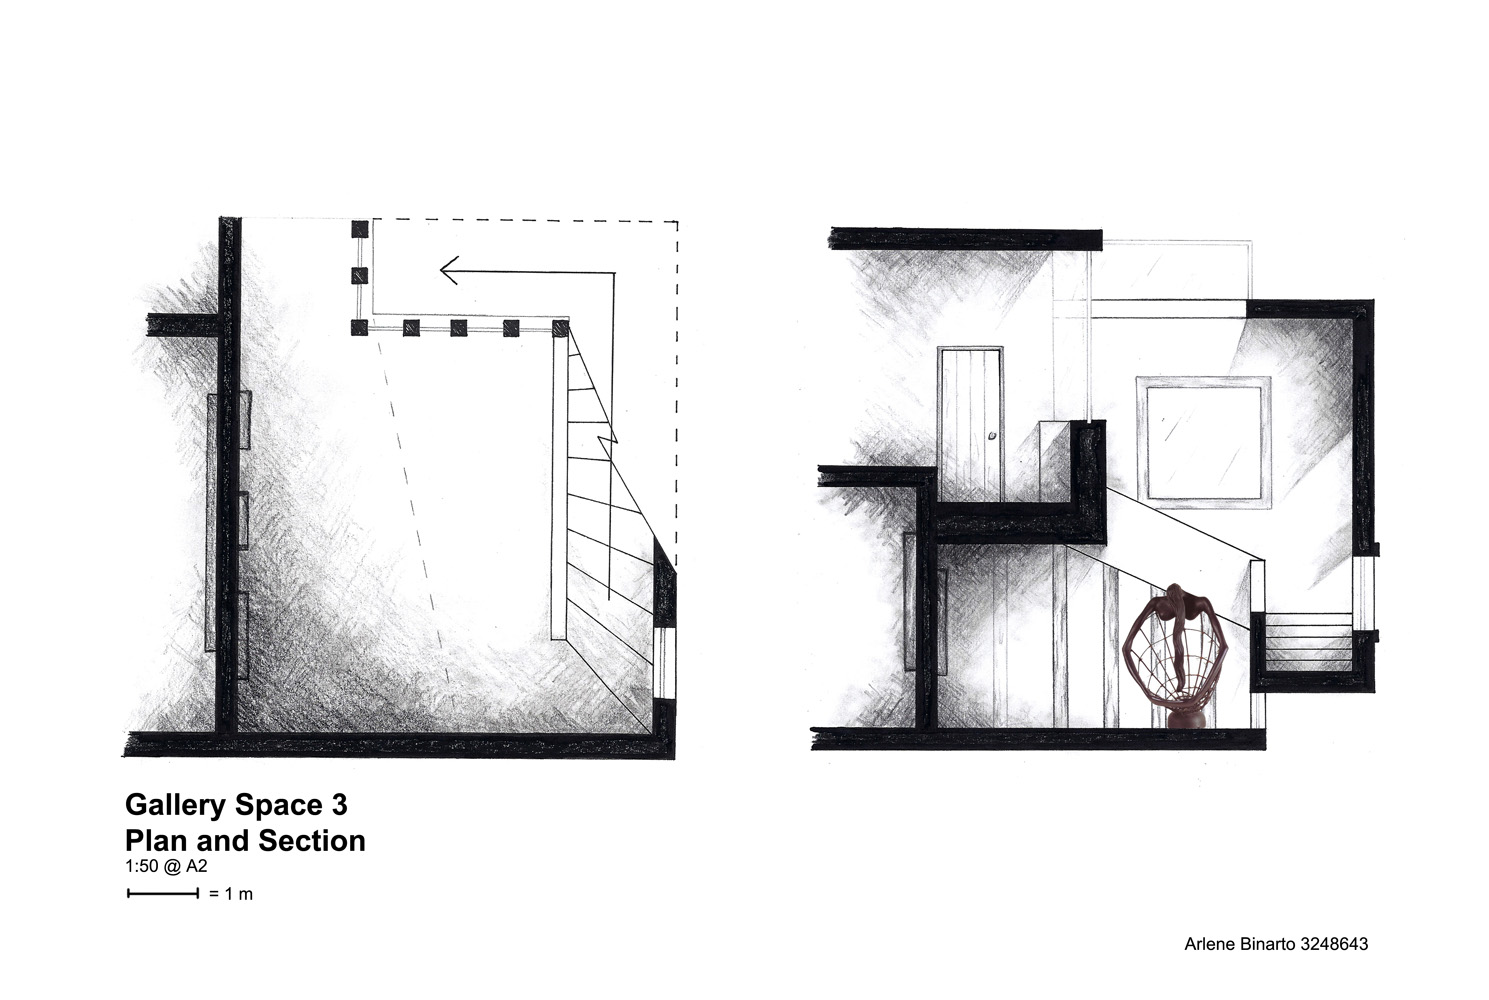 One room section and plan poche arlene binarto for The concept of space in mamluk architecture